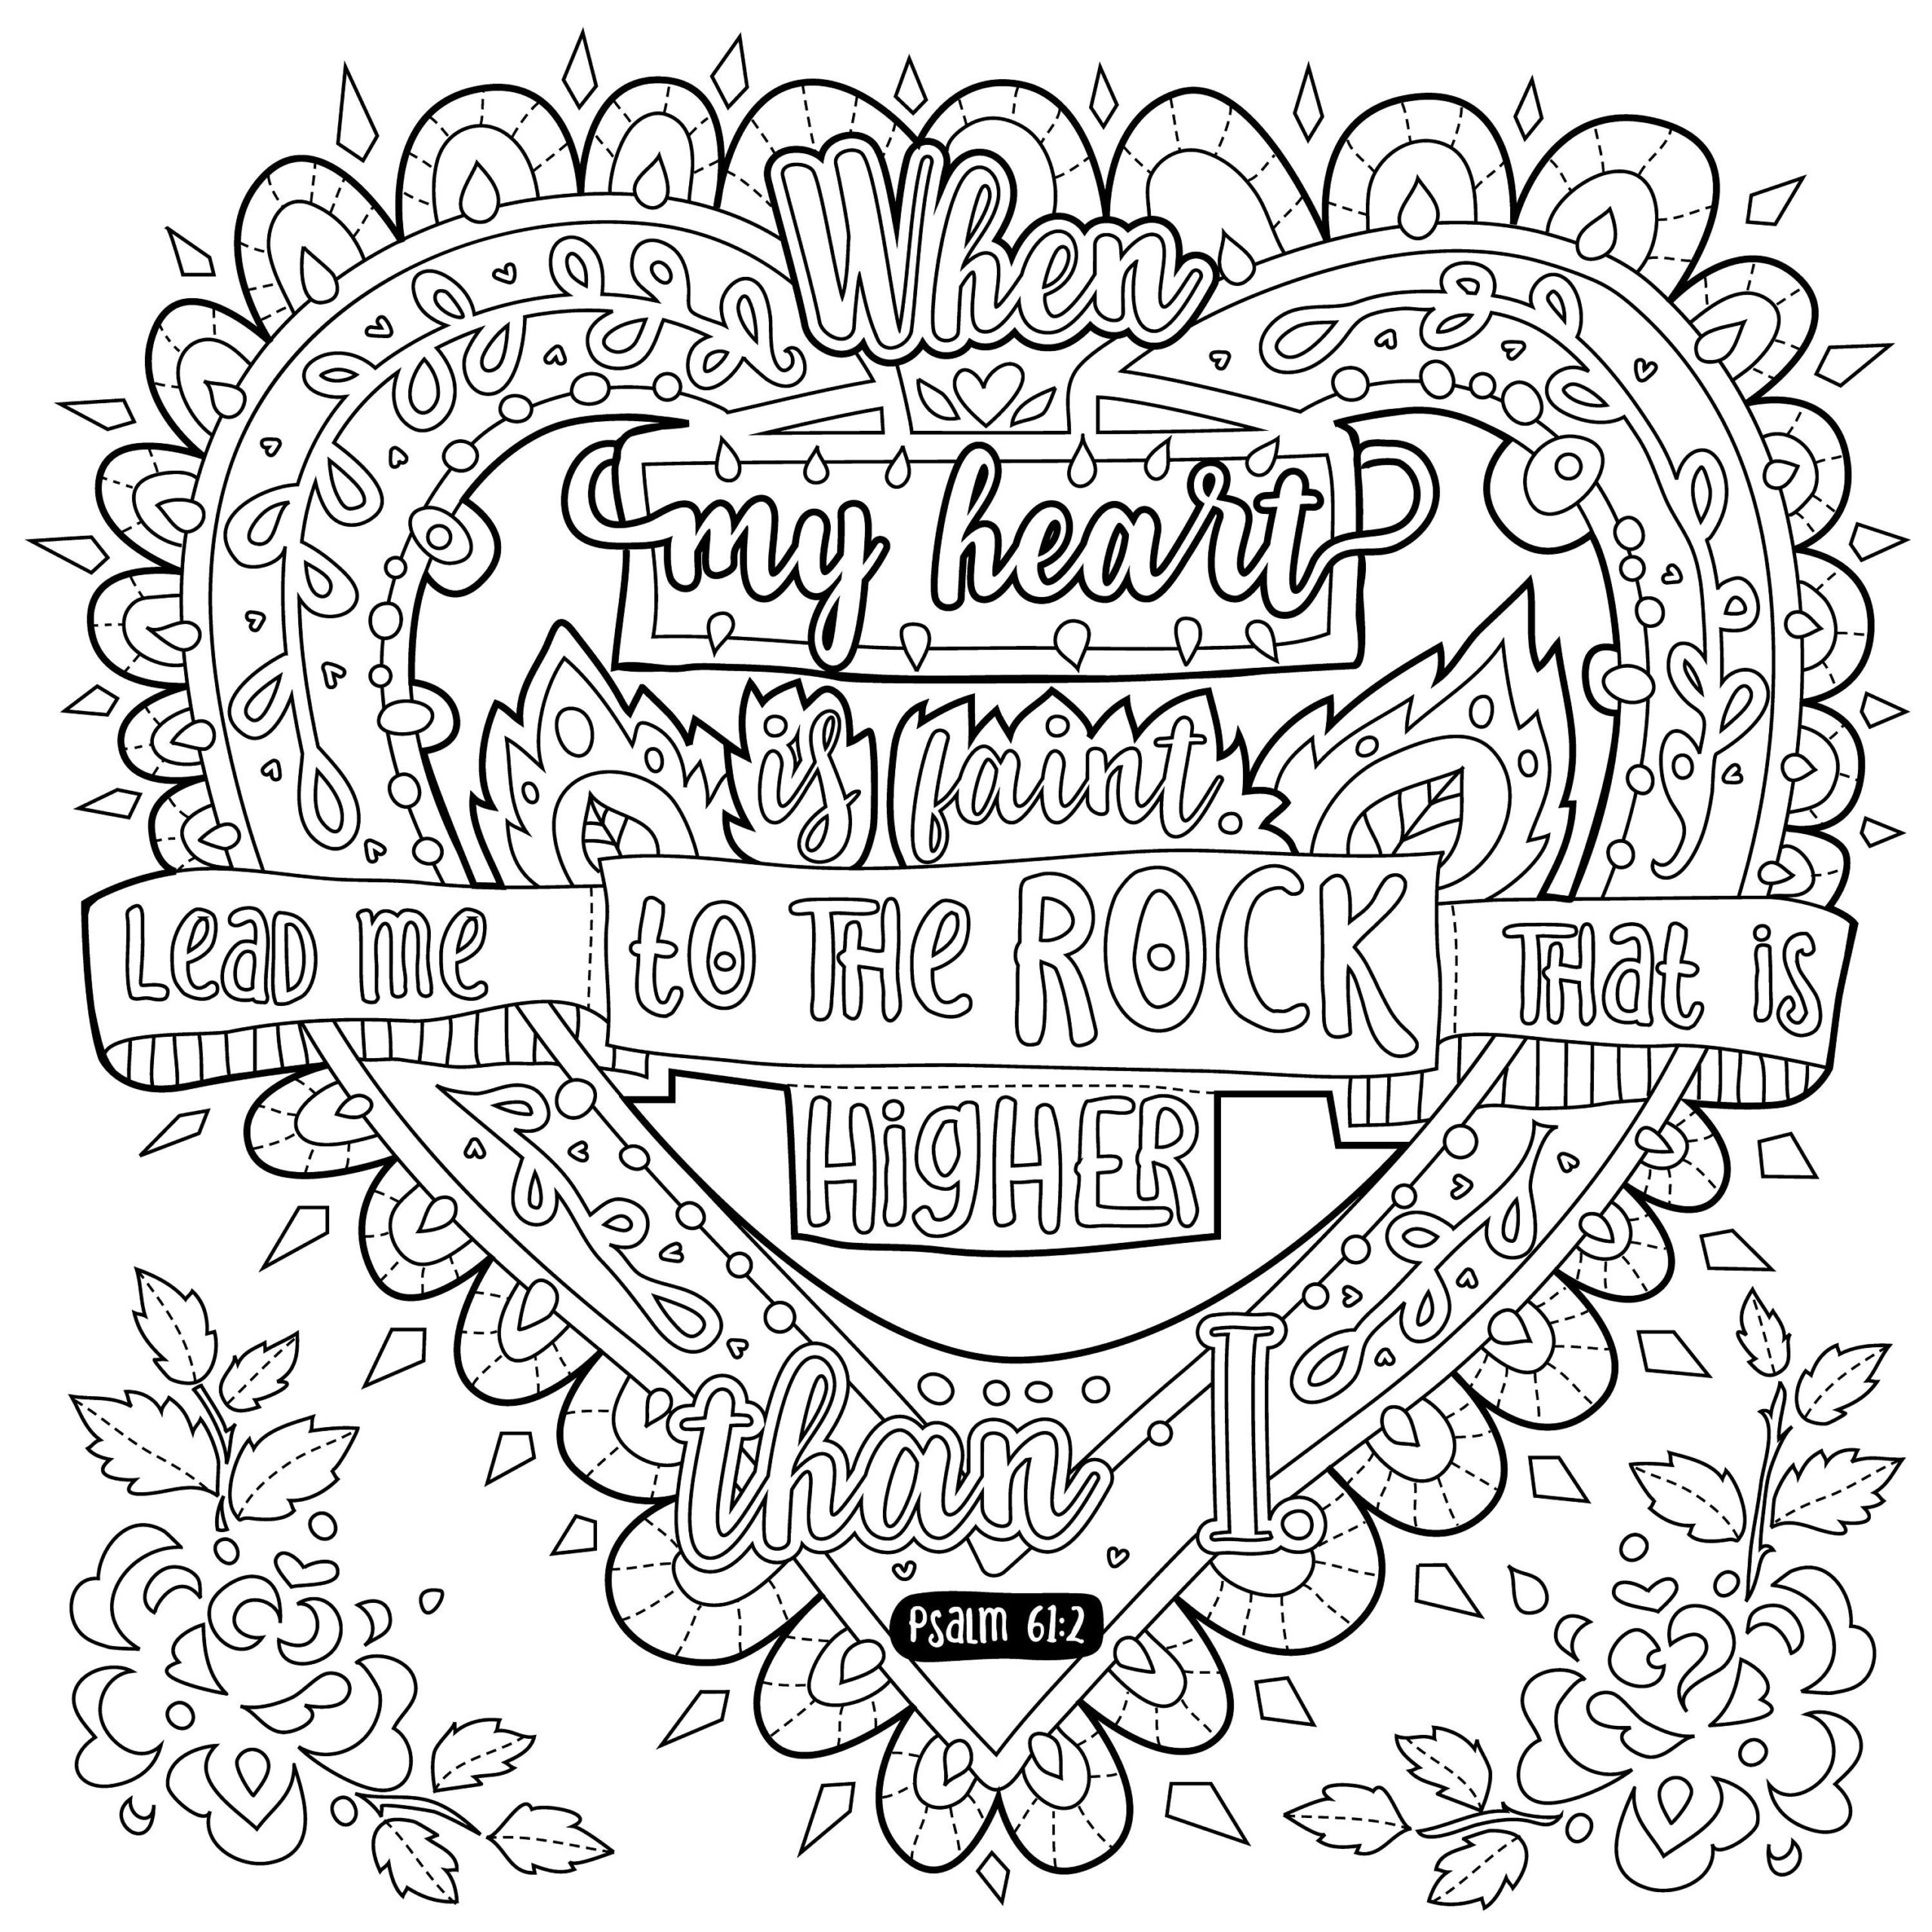 Coloring Pages : Motivational Printable Coloring Pages ...